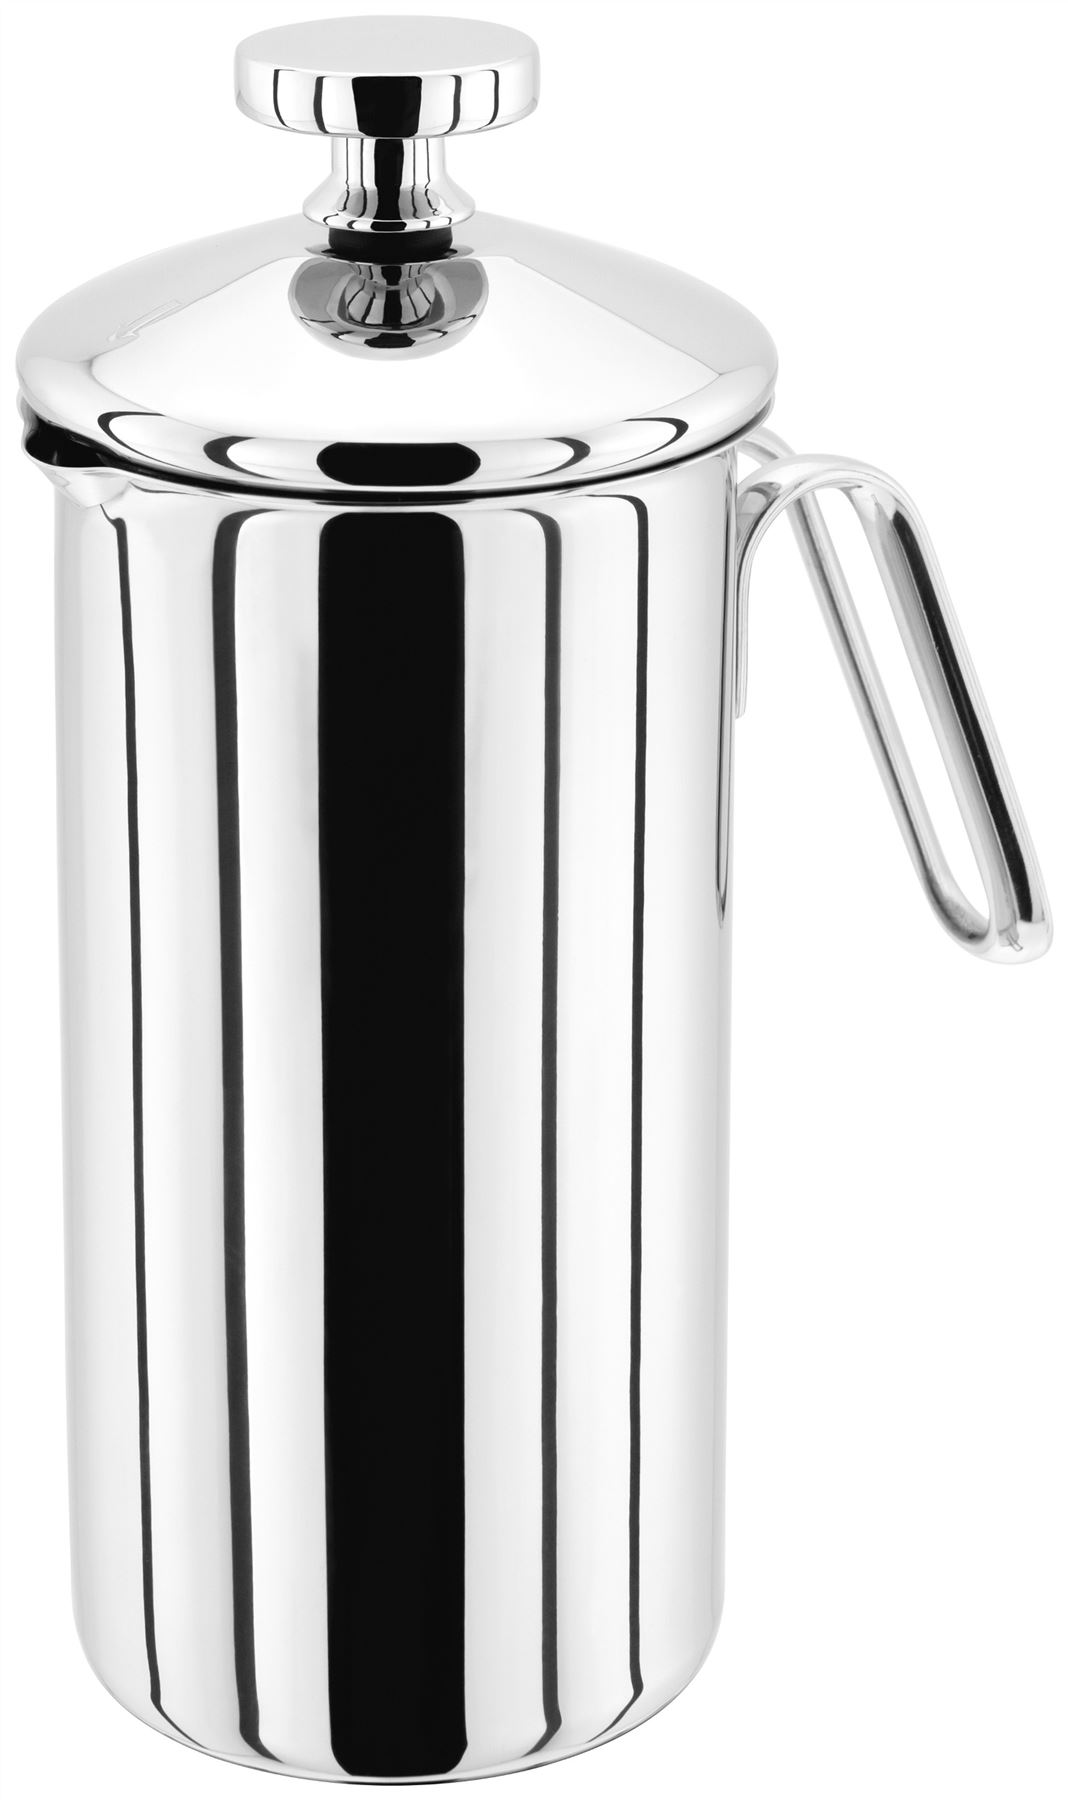 Judge Stainless Steel Cafetiere Single Or Double Wall Coffee Maker French Press eBay